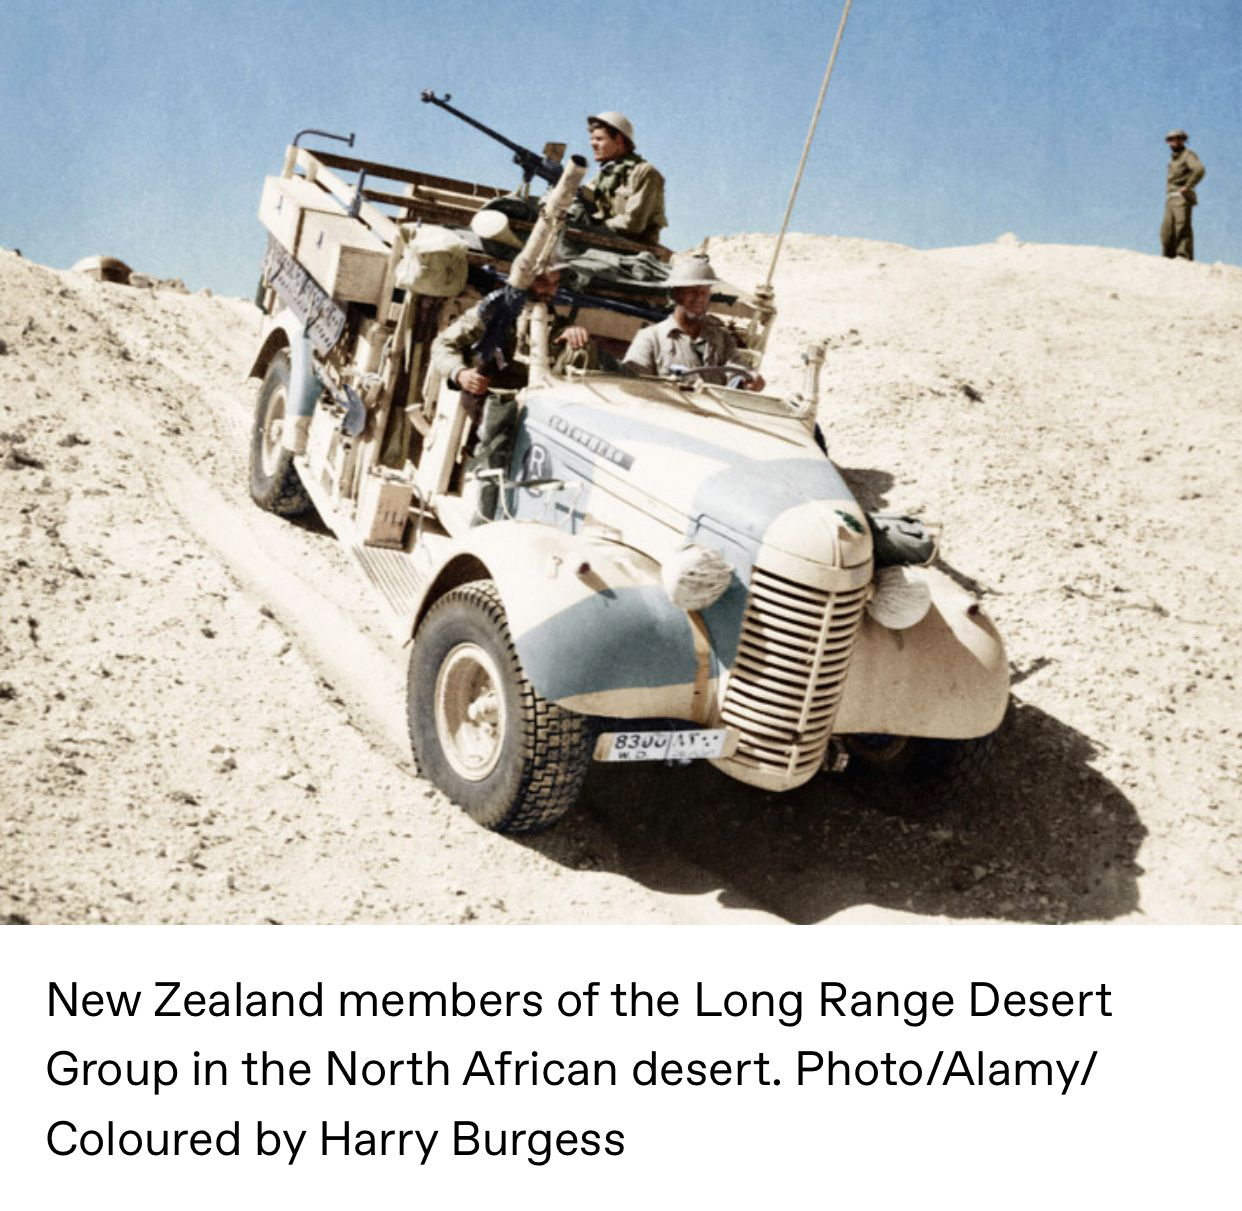 Pin by Johnno on New Zealand Army New zealand, Nz